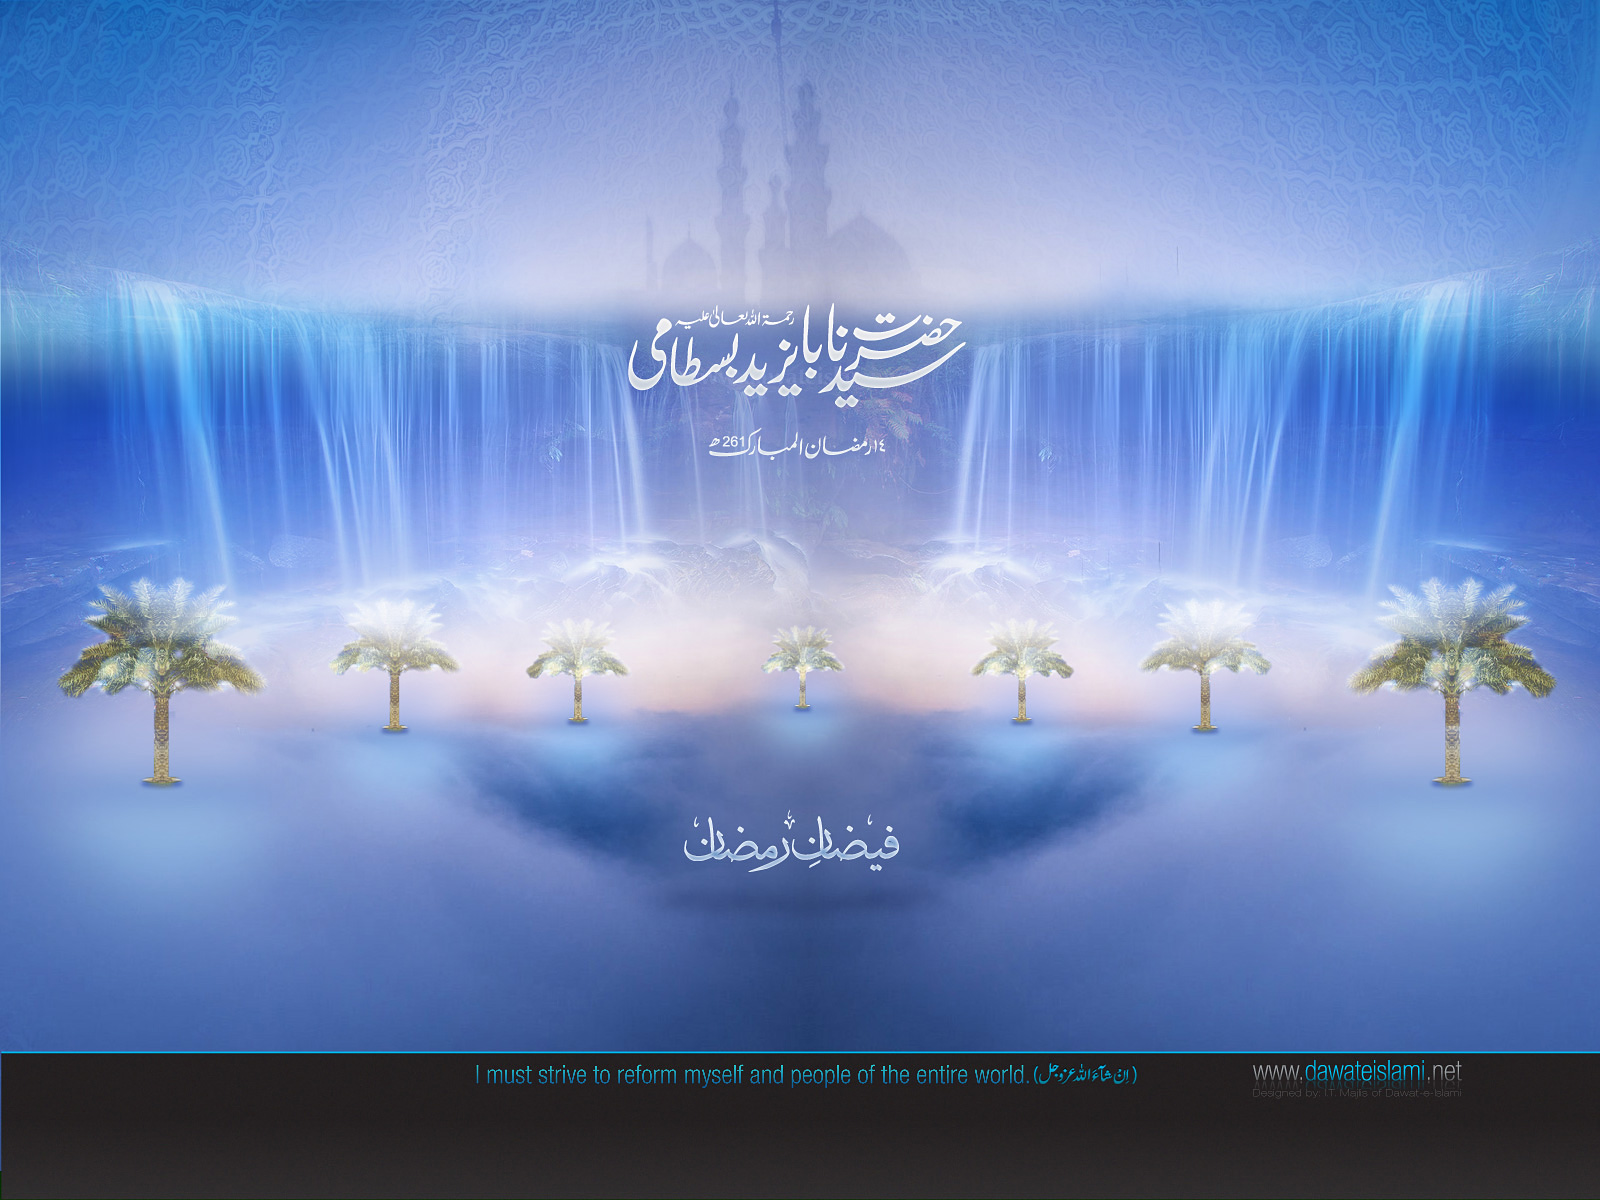 Hearts With Quotes Wallpapers Islami Wallpaper Ramadan Wallpapers